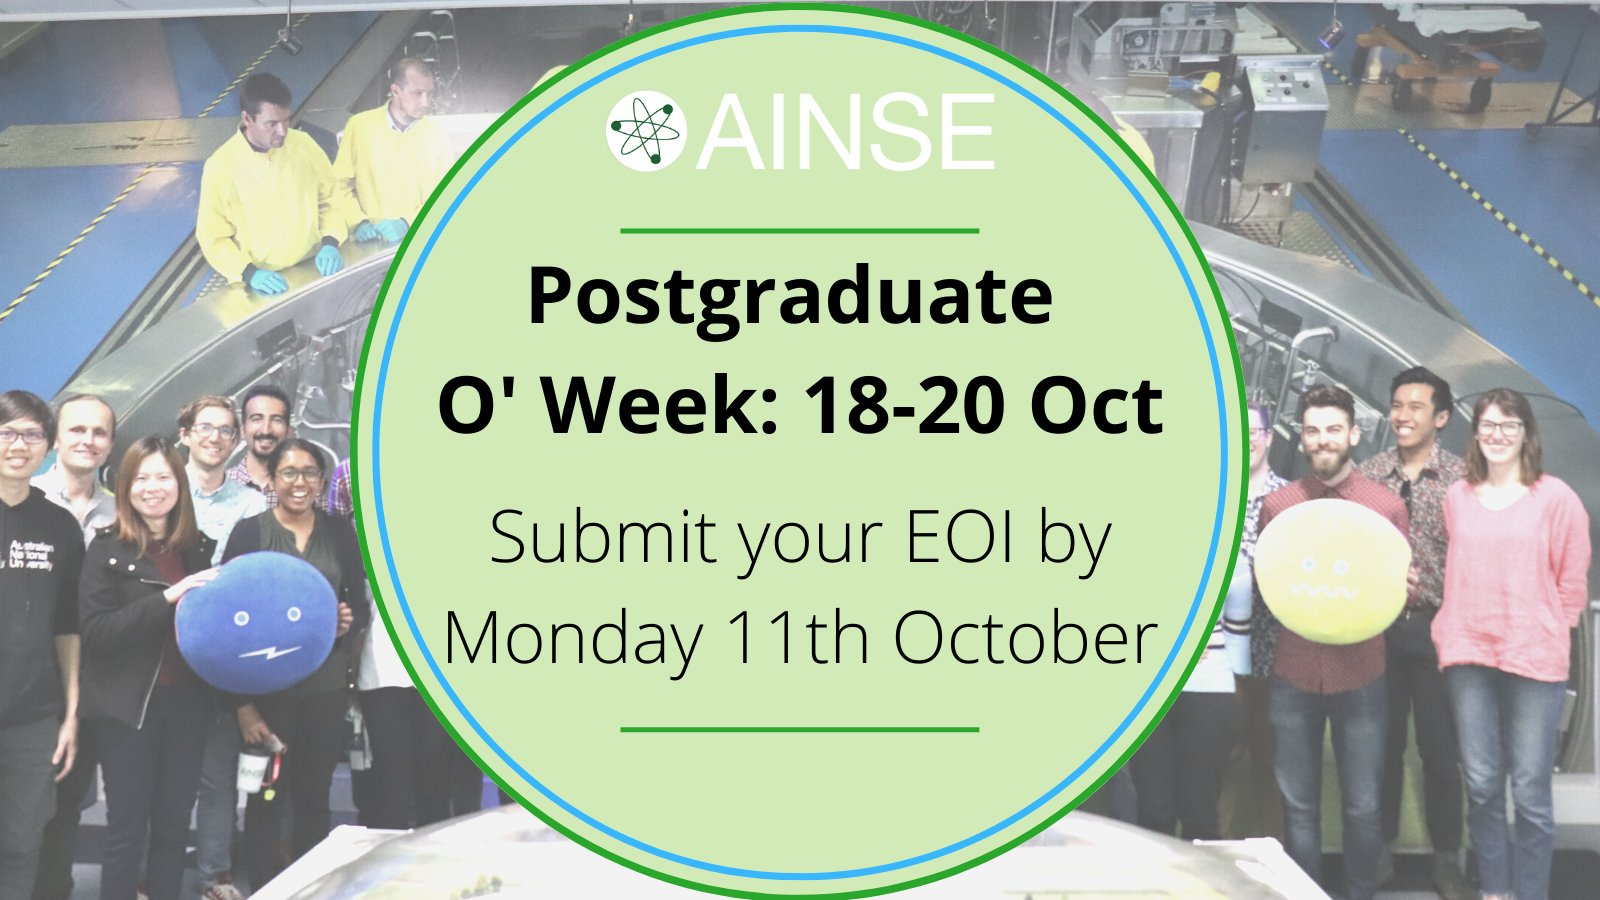 2021 AINSE Postgraduate O'Week (Online) – submit EOI by Oct 11